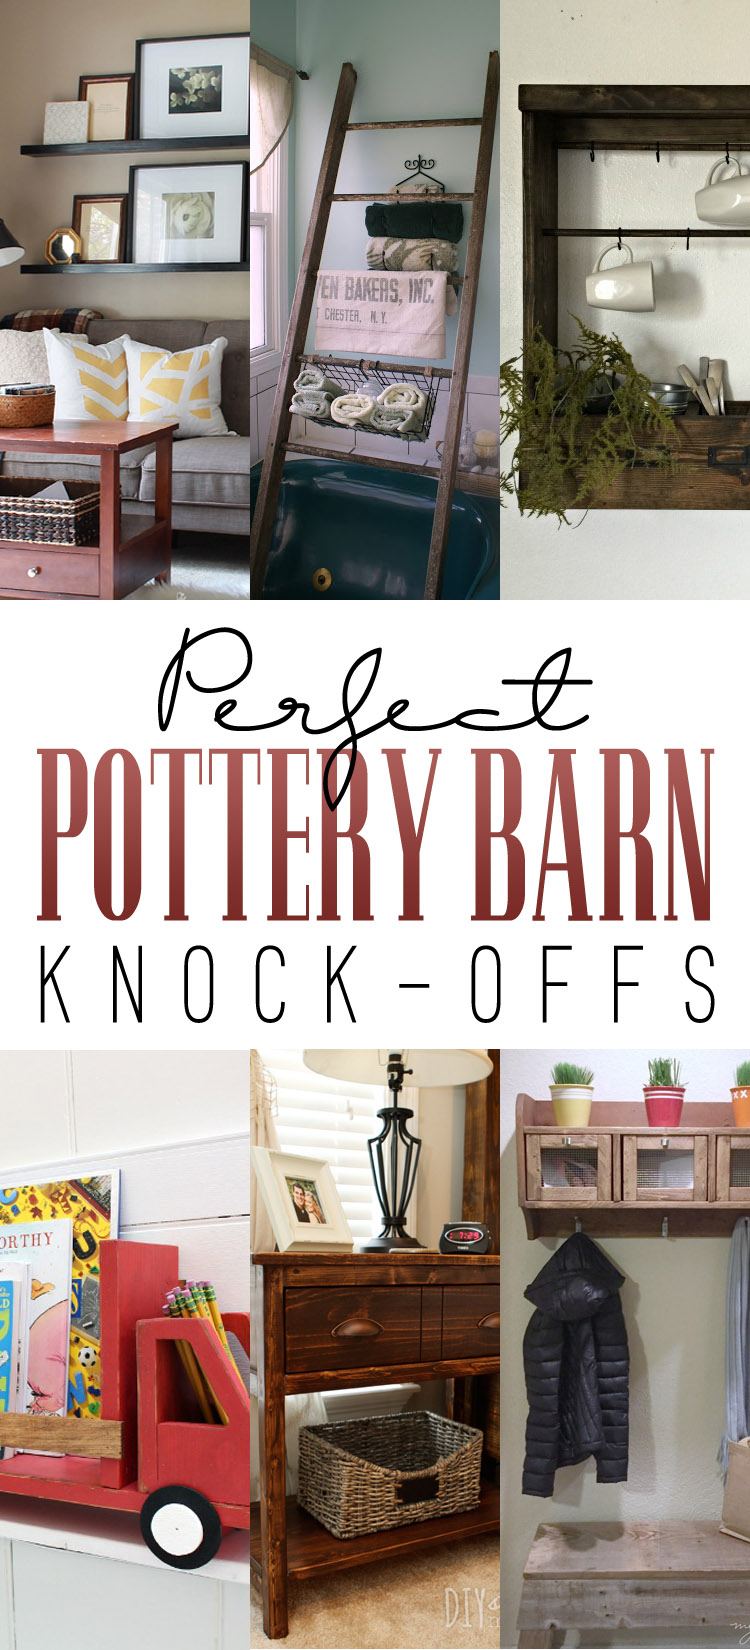 PotteryBarn=TOWER--001